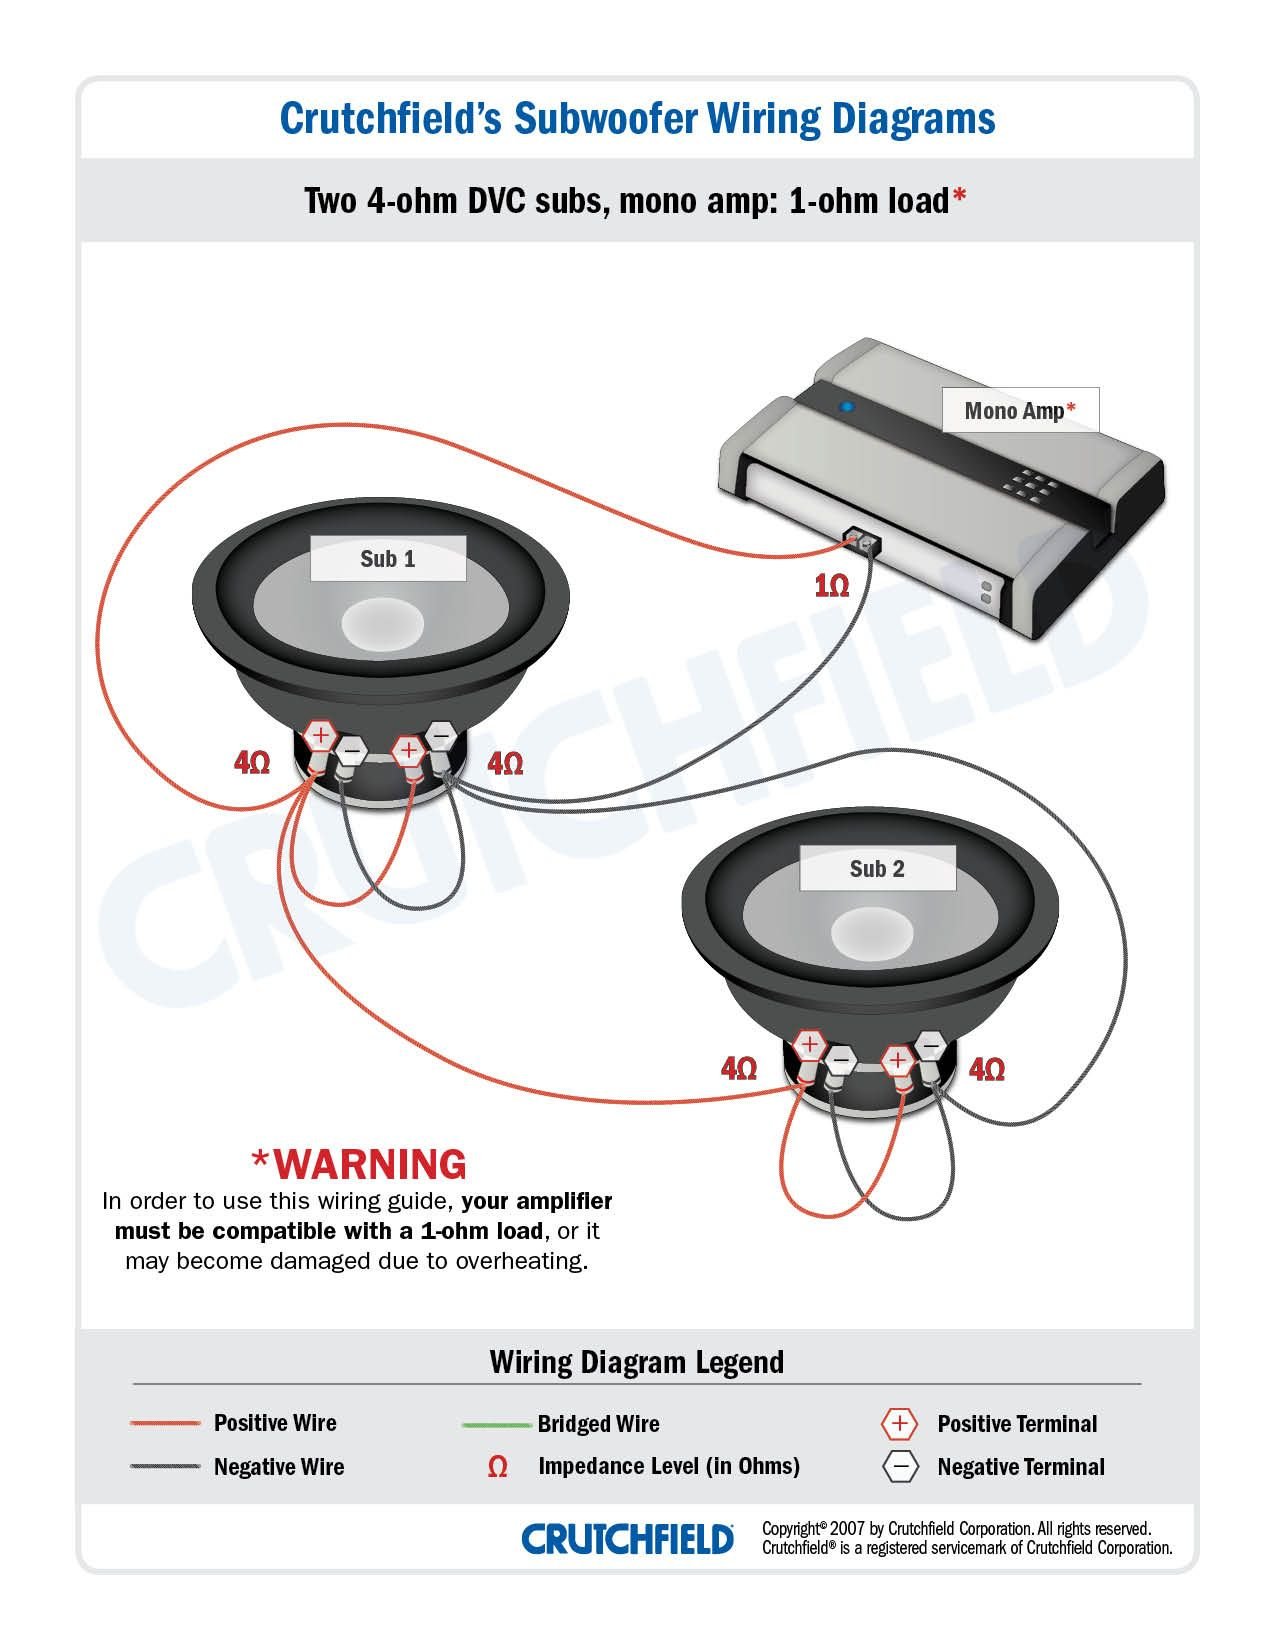 car audio crossover wiring diagram mitsubishi split ac pin by melvin martinez on pinterest and there are many ways to connect subwoofers an amplifier our diagrams will help you find the best way wire your subs amps so ll get